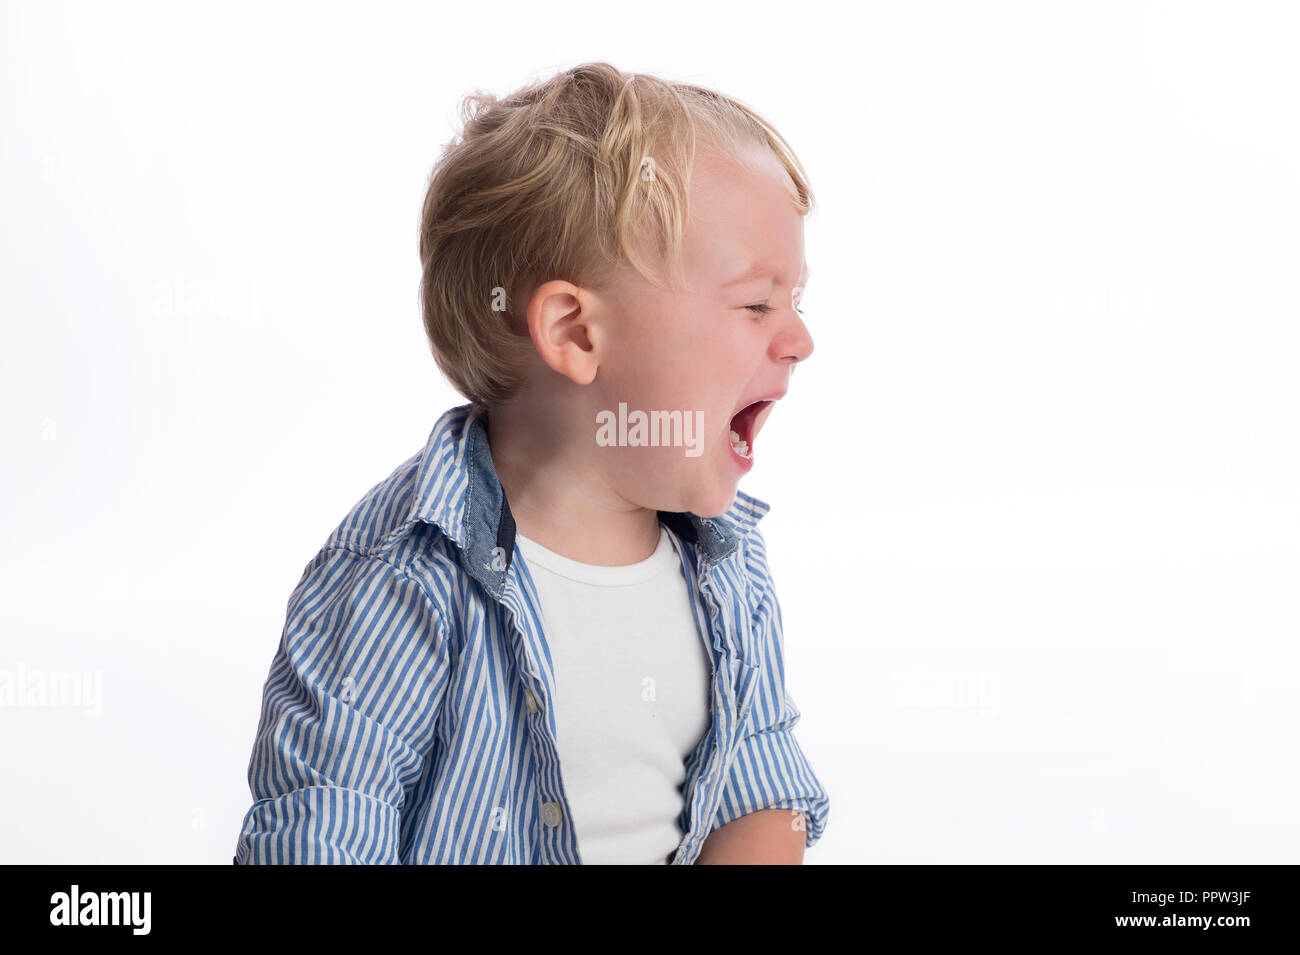 A profile view of a two year old boy crying. Shot in the studio on a white, seamless backdrop. - Stock Image